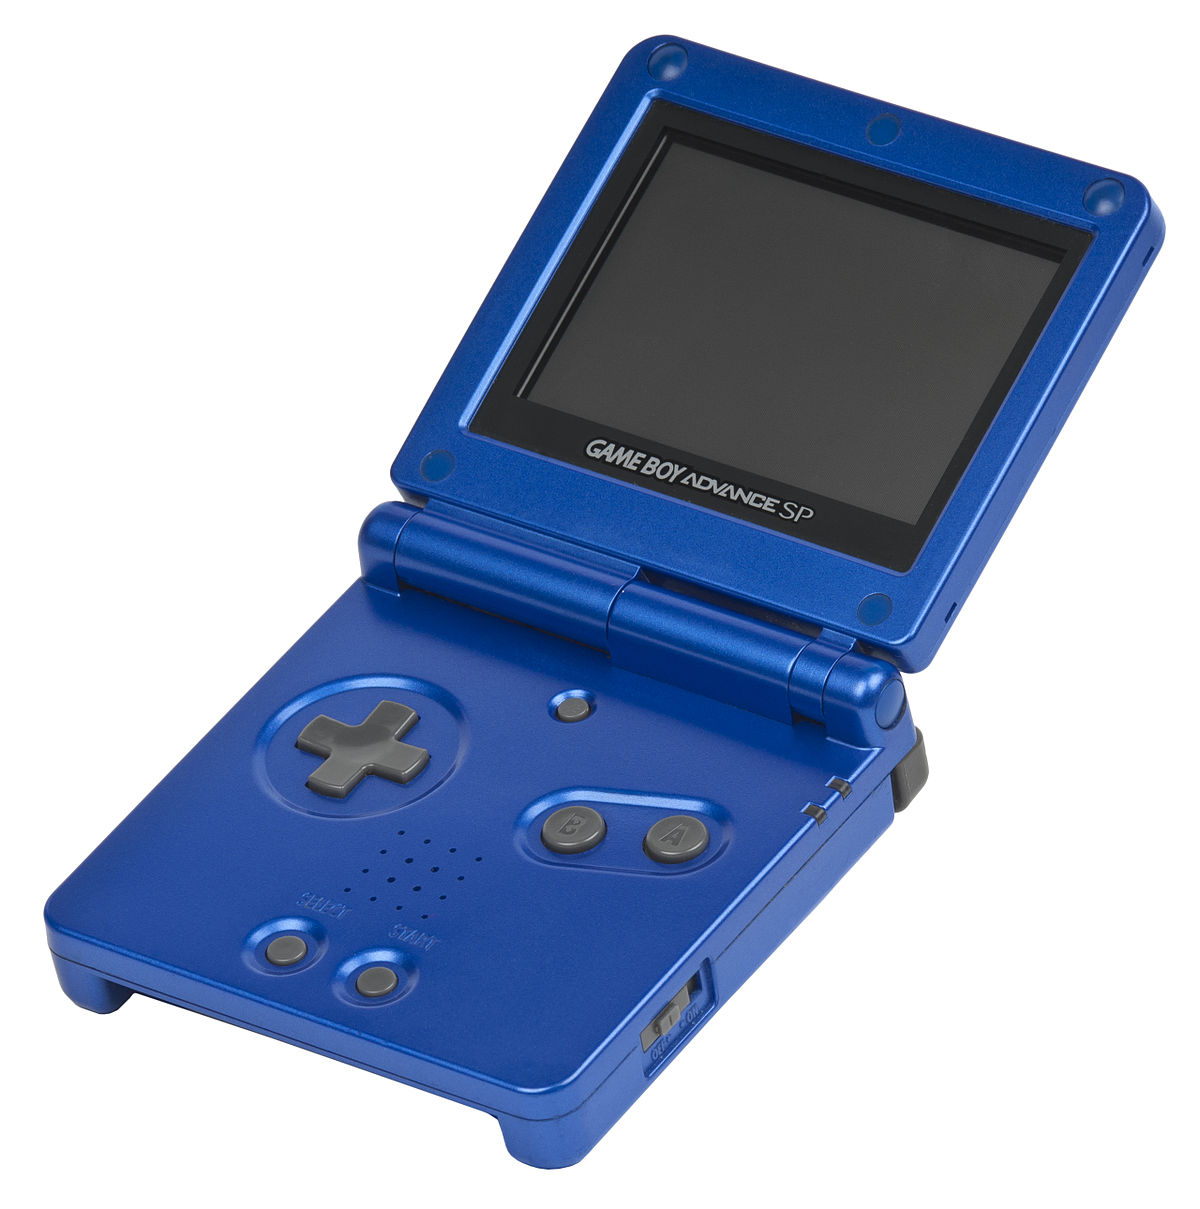 game boy advance sp wikipedia. Black Bedroom Furniture Sets. Home Design Ideas